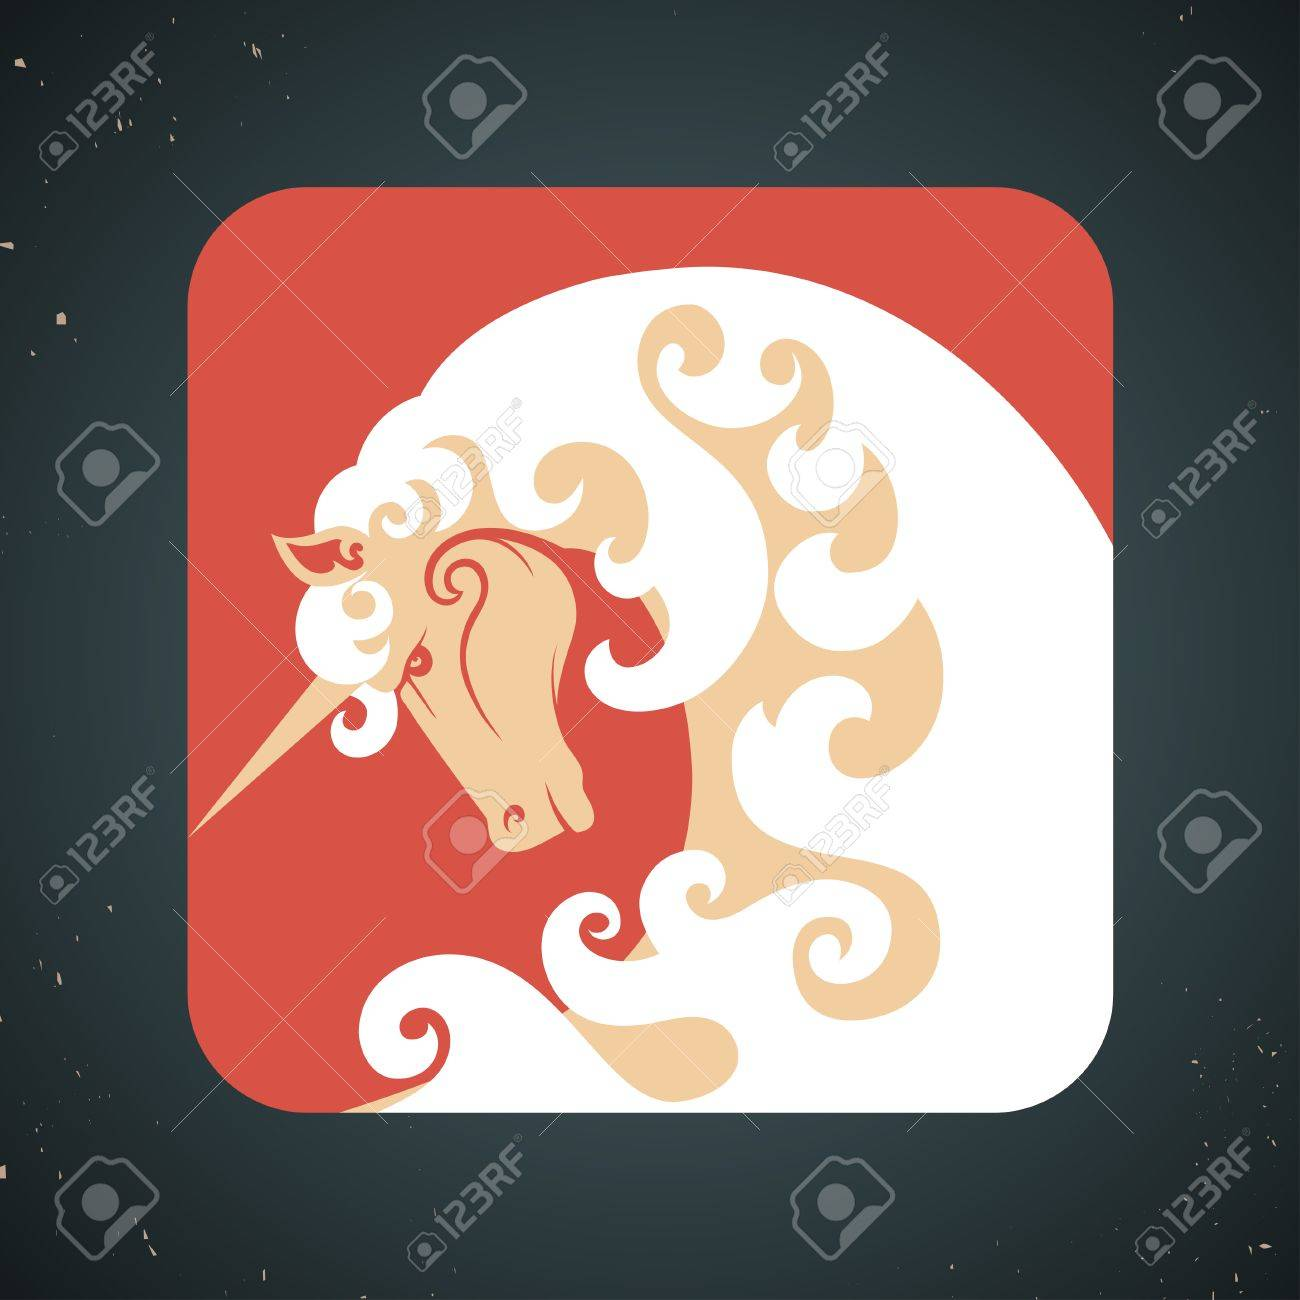 Icon of a ornate mythical magic unicorn with a white horn and mane symbolic of virginity, chastity and purity Stock Vector - 25357089